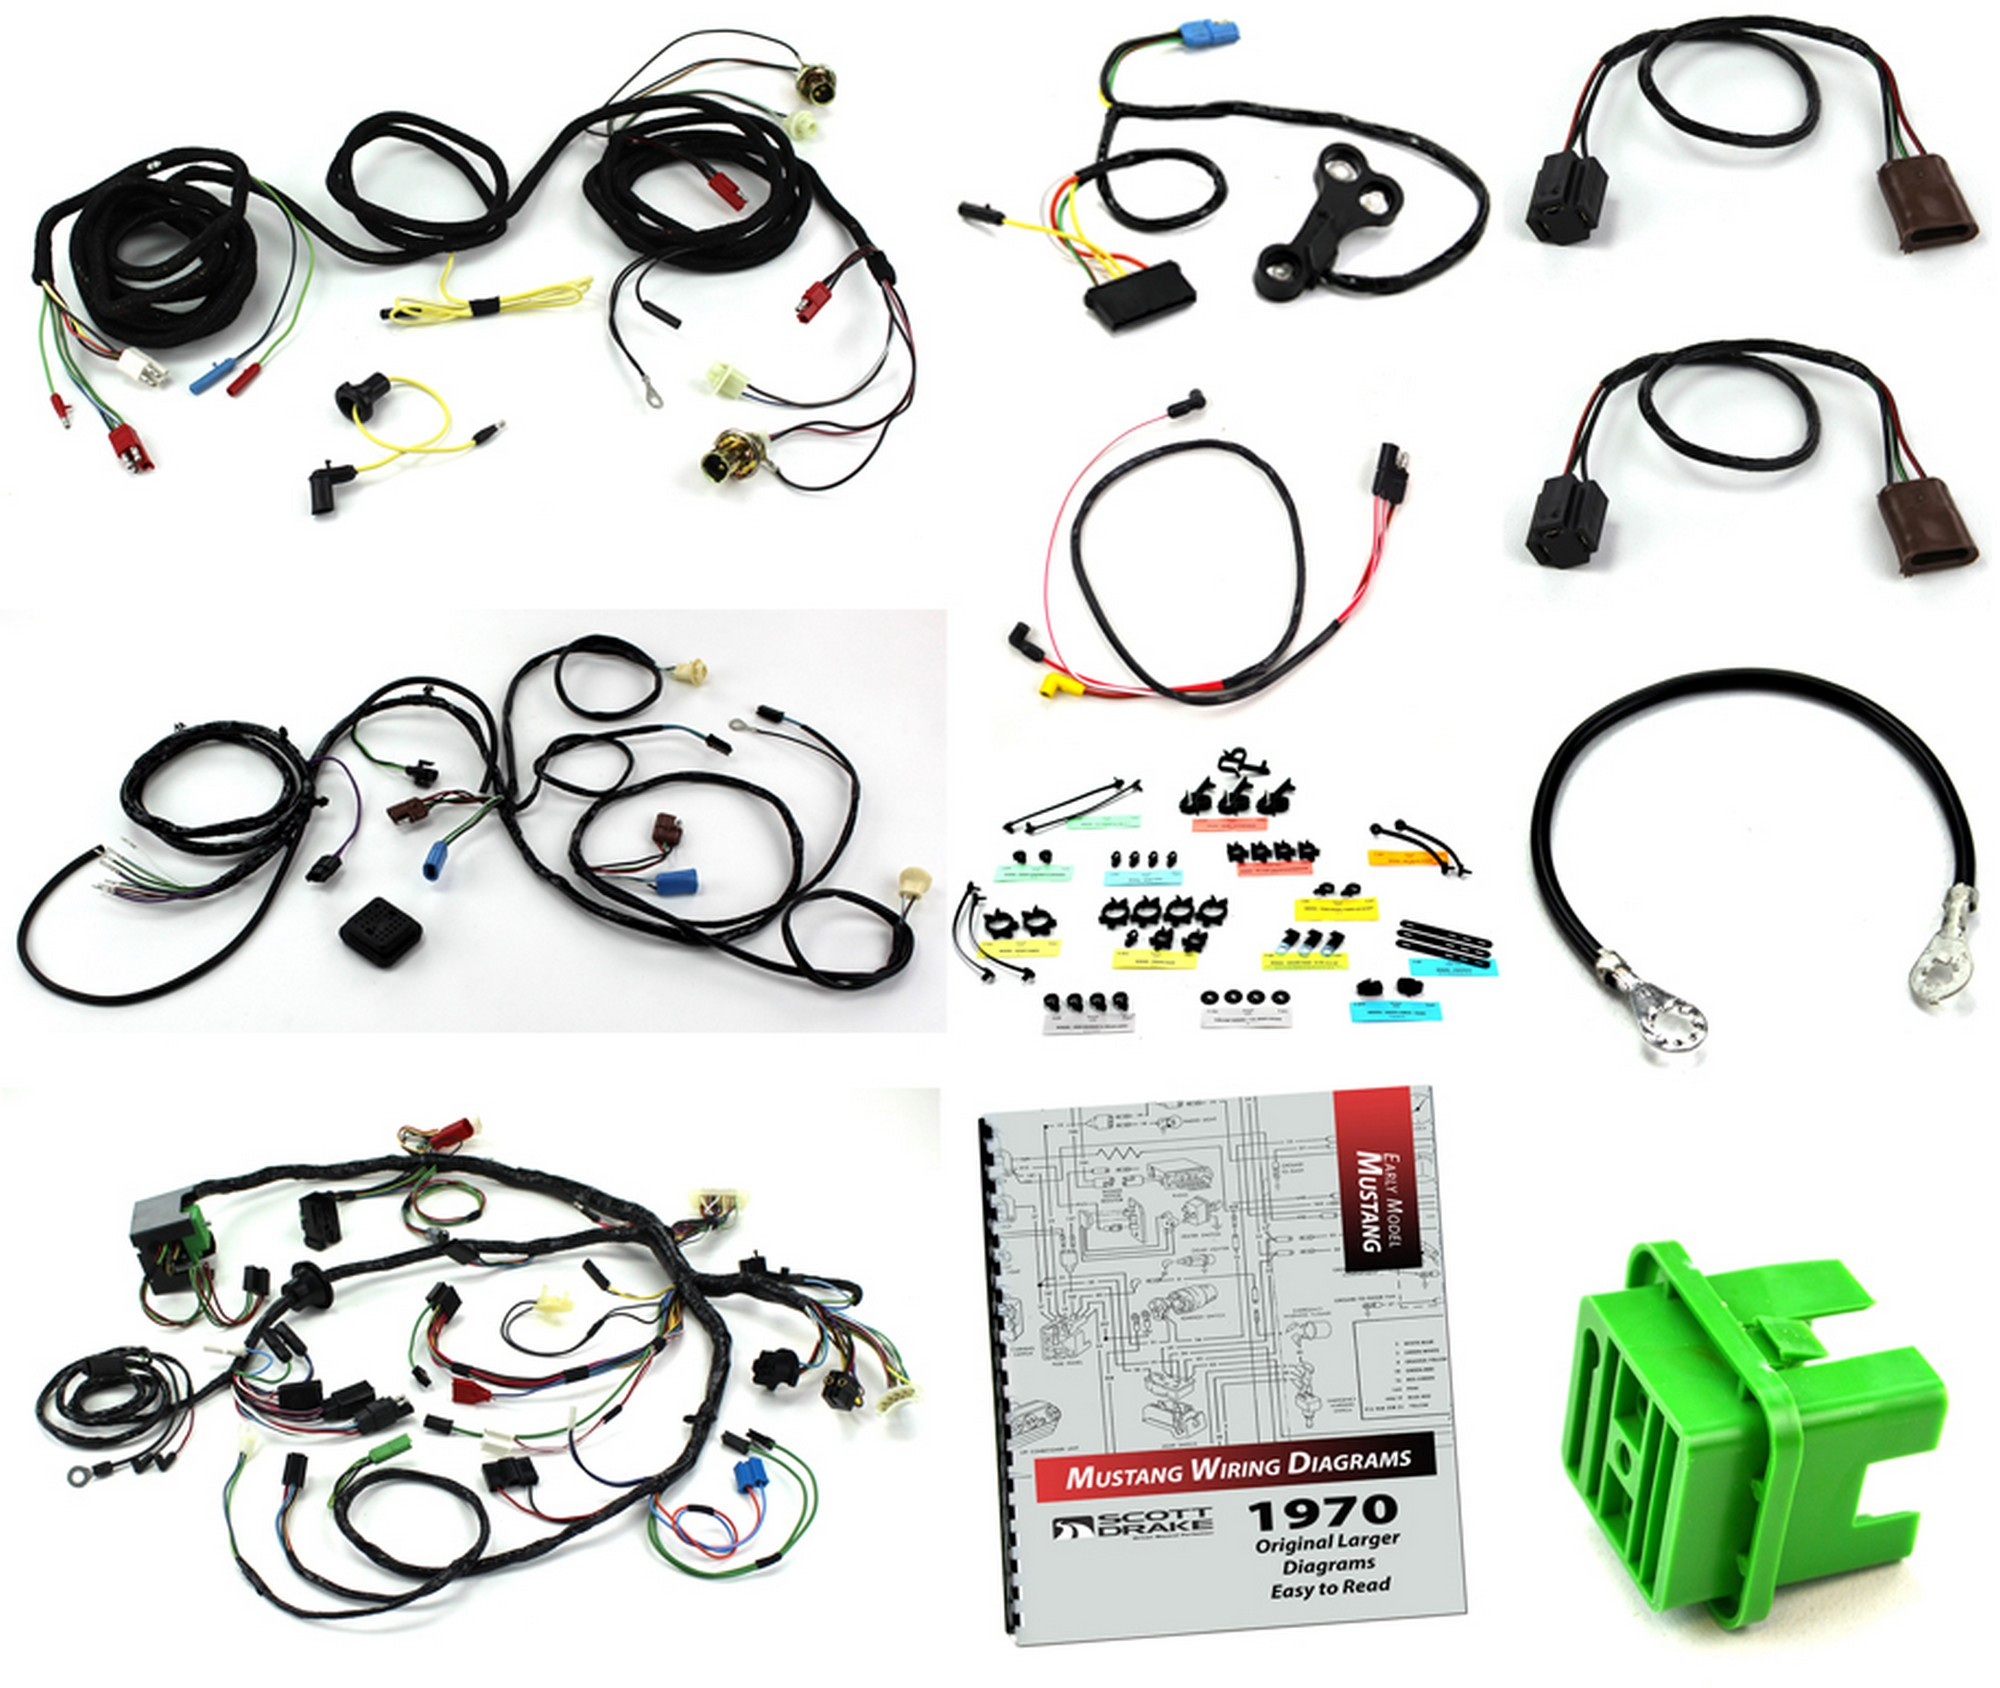 wiring kit boss 302 / with tach / without a/c 1970  kentucky mustang